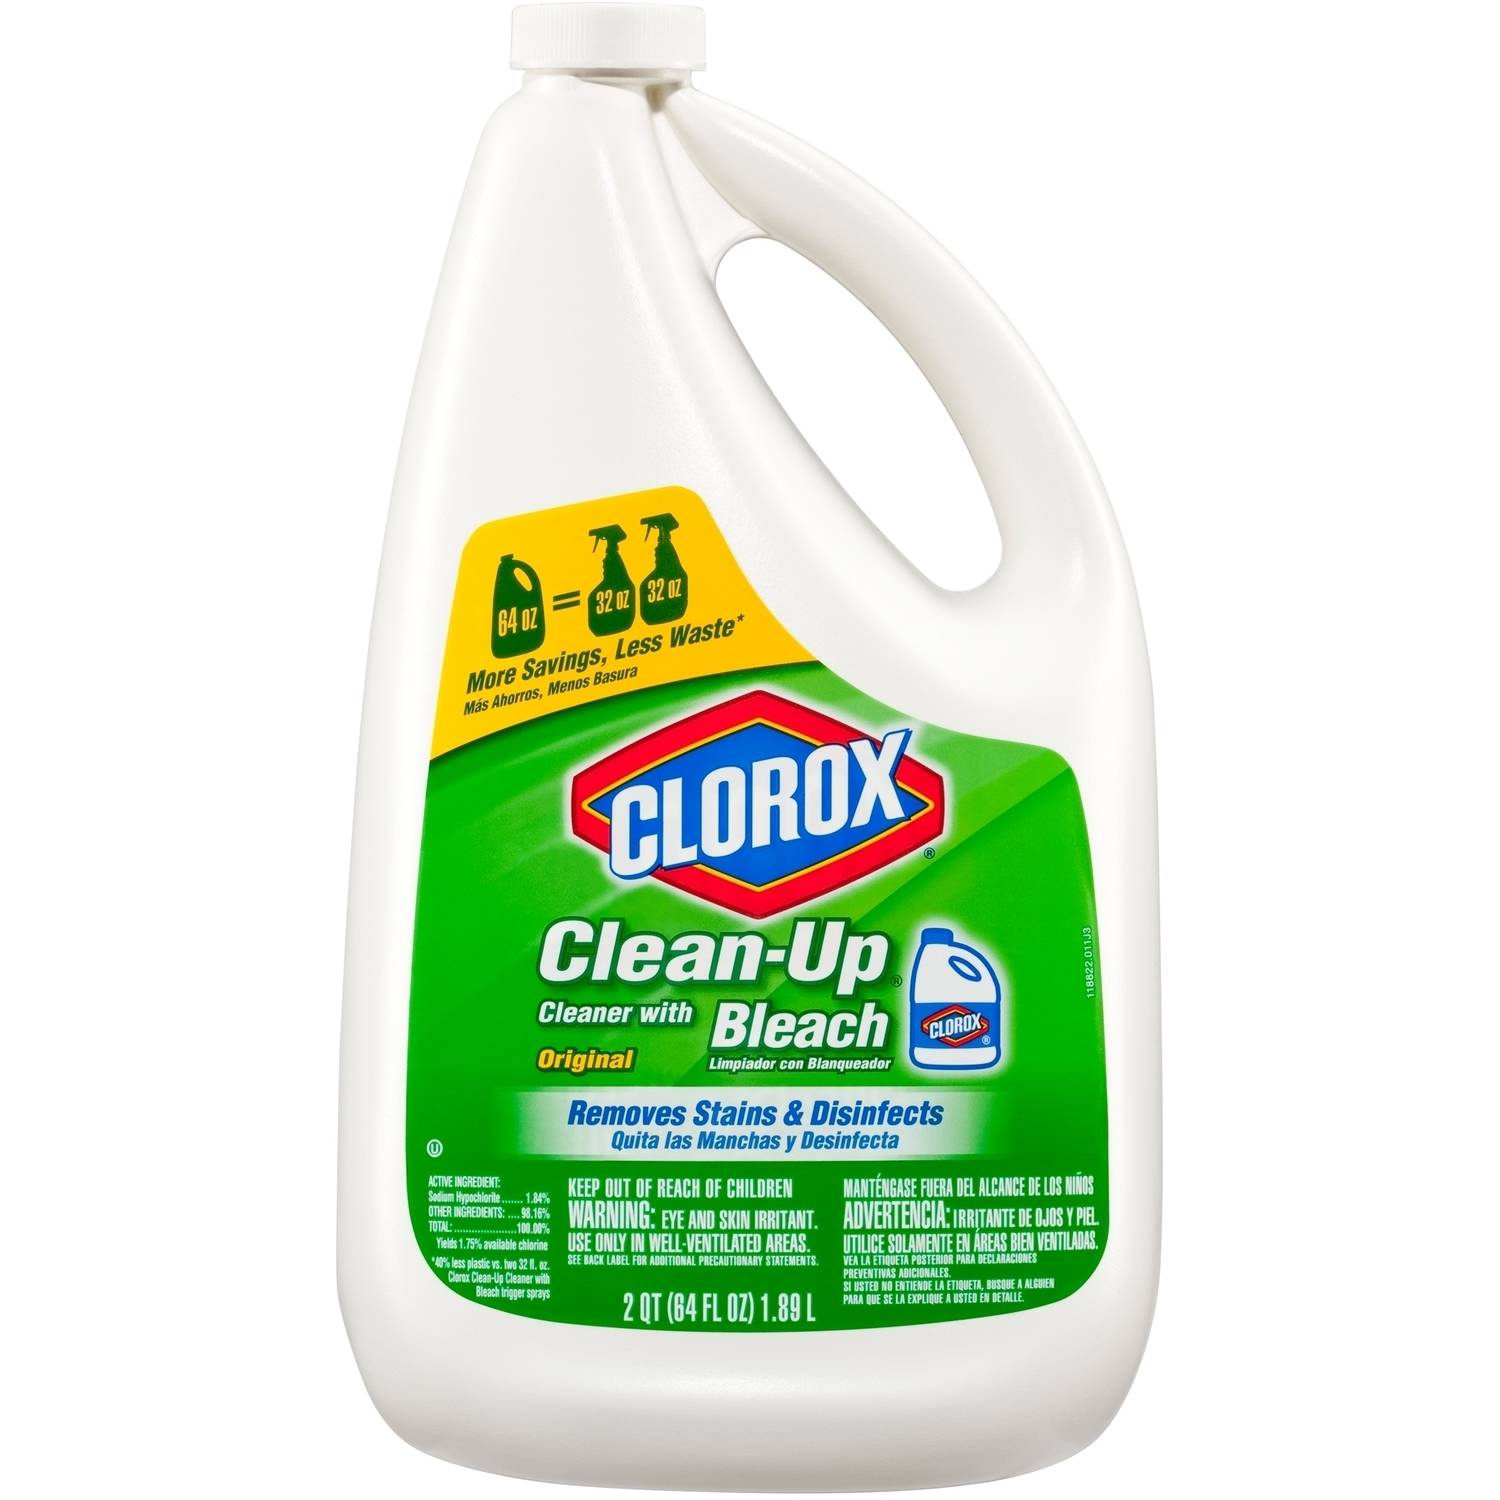 Clorox Clean-Up All Purpose Cleaner with Bleach, Refill Bottle, Original, 64 Ounces